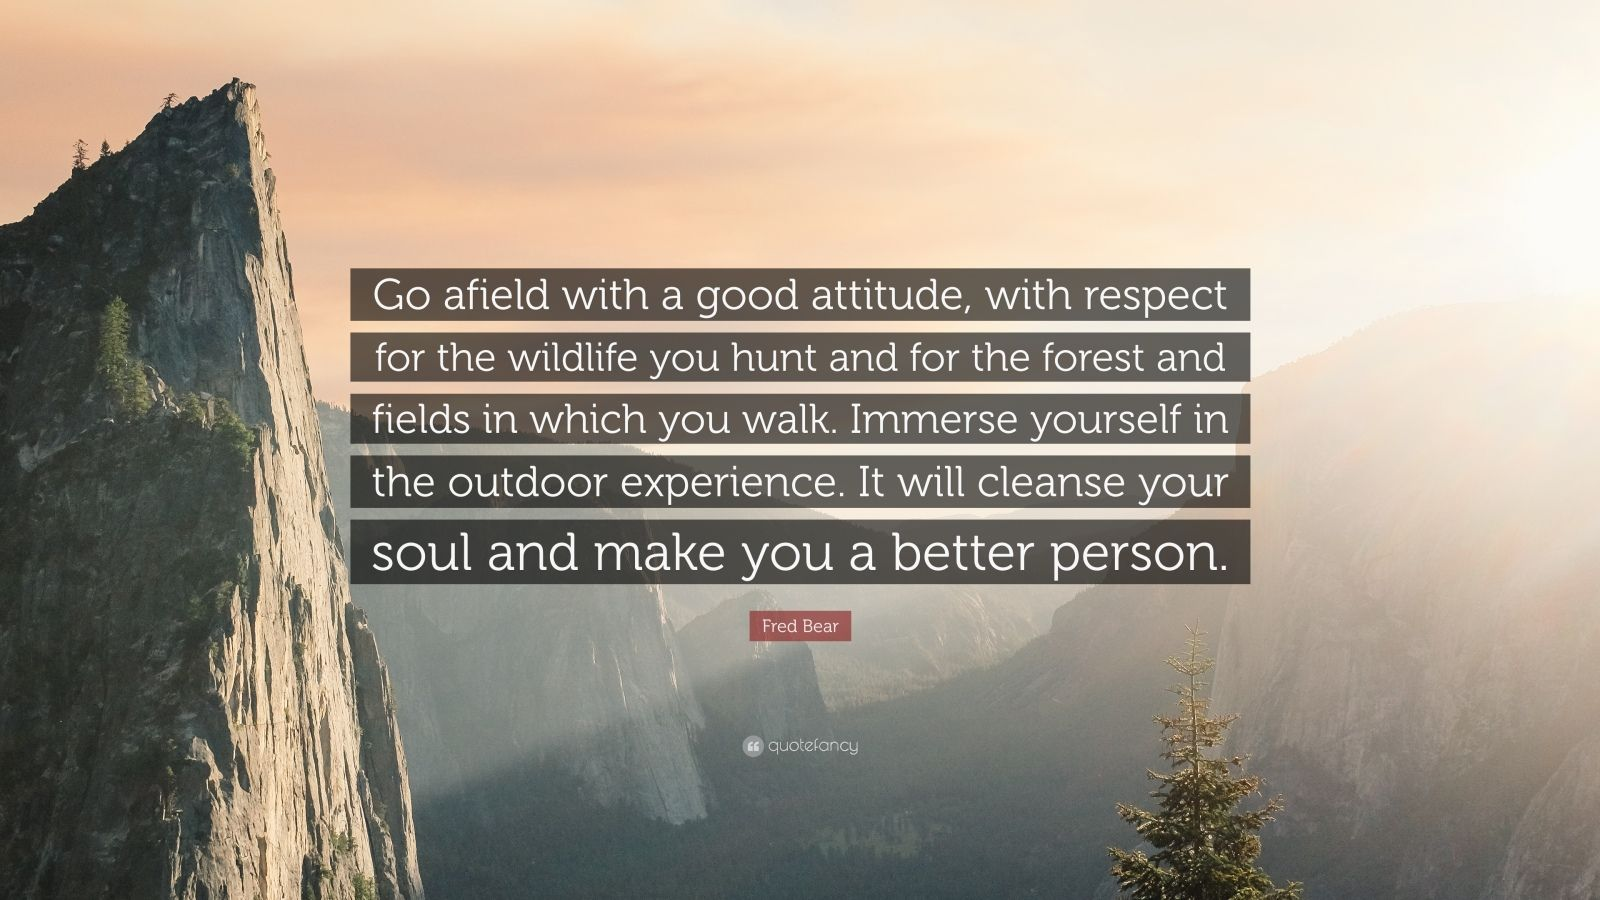 """Fred Bear Quote: """"Go afield with a good attitude, with respect for the wildlife you hunt and for the forest and fields in which you walk. Immerse yourself in the outdoor experience. It will cleanse your soul and make you a better person."""""""